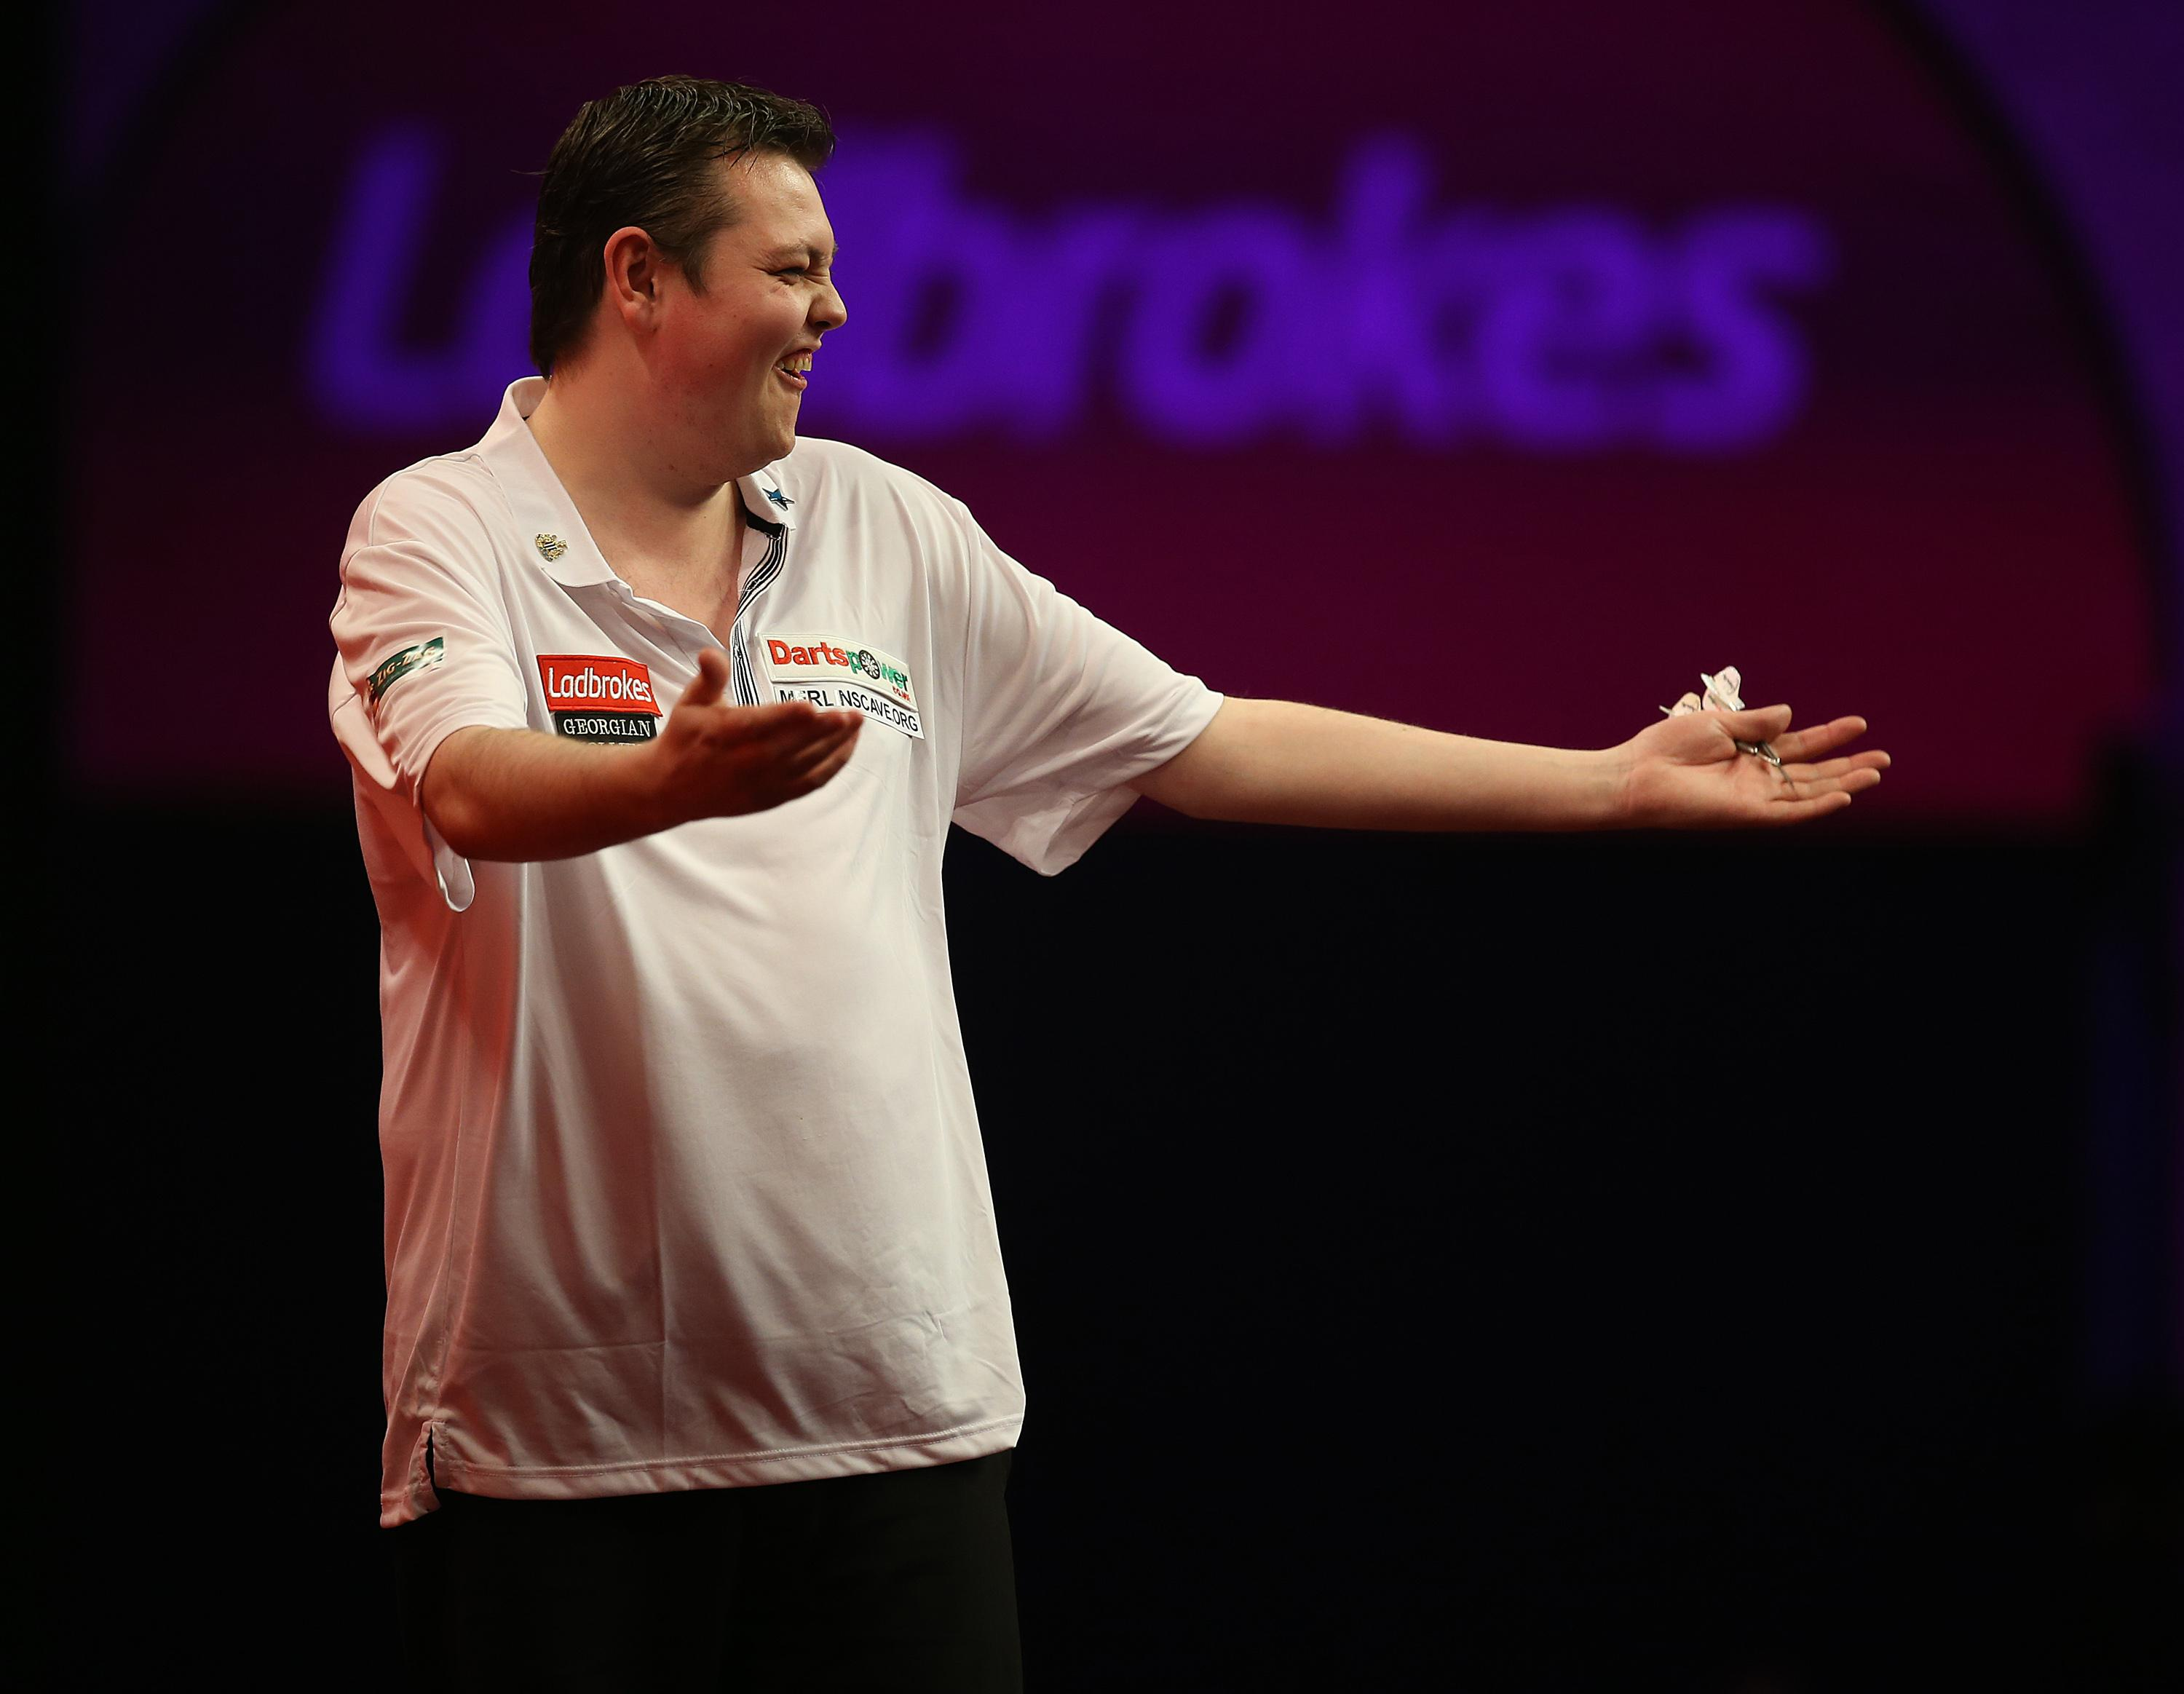 McDine will next be able to play darts in November 2019